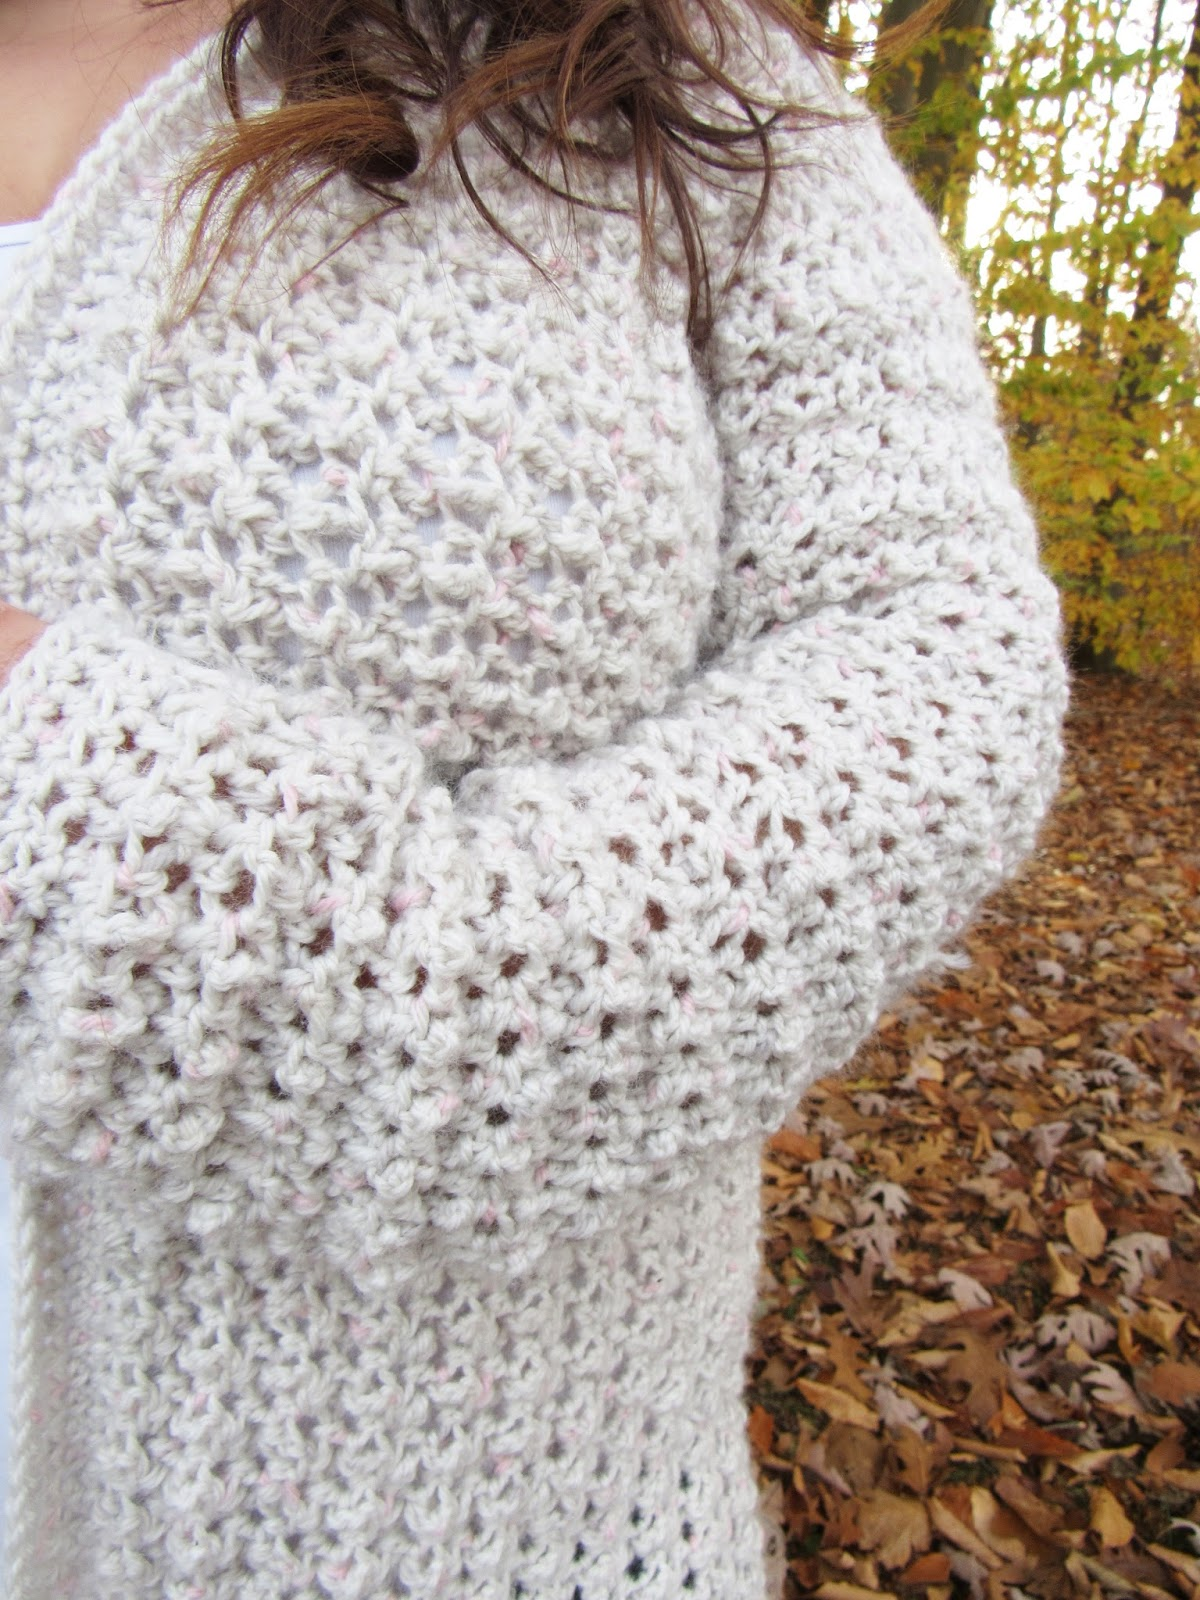 Comfy cozy oversized crochet cardigan pattern poppy cardigan i made this cardigan so it was loose fitting for extra coziness and the stitches i paired together make the ultimate squishy texture bankloansurffo Choice Image